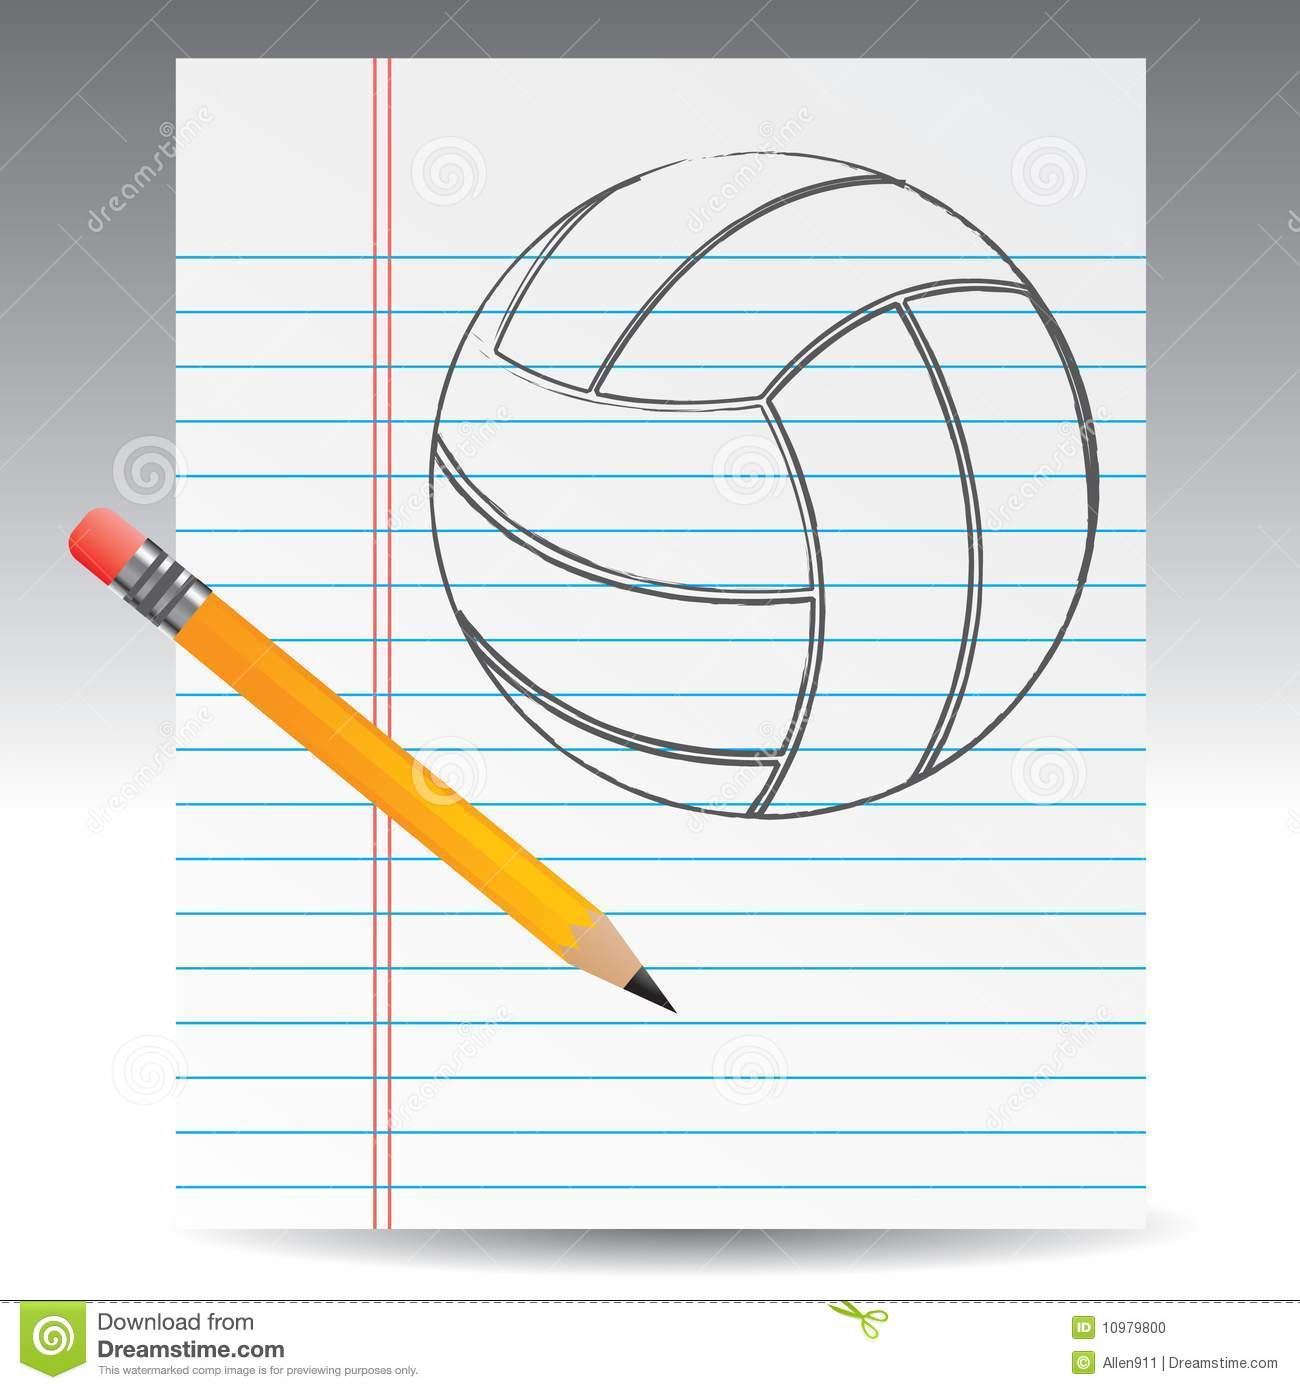 History Essay Format Volleyball Drawn On Paper Pencil Stock Vector Illustration Volleyball Drawn  On Paper Pencil Essay Revision also Essay On Seven Wonders Of The World Volleyball Essays Volleyball Drawn On Paper Pencil Stock Vector  Essay Indian Culture